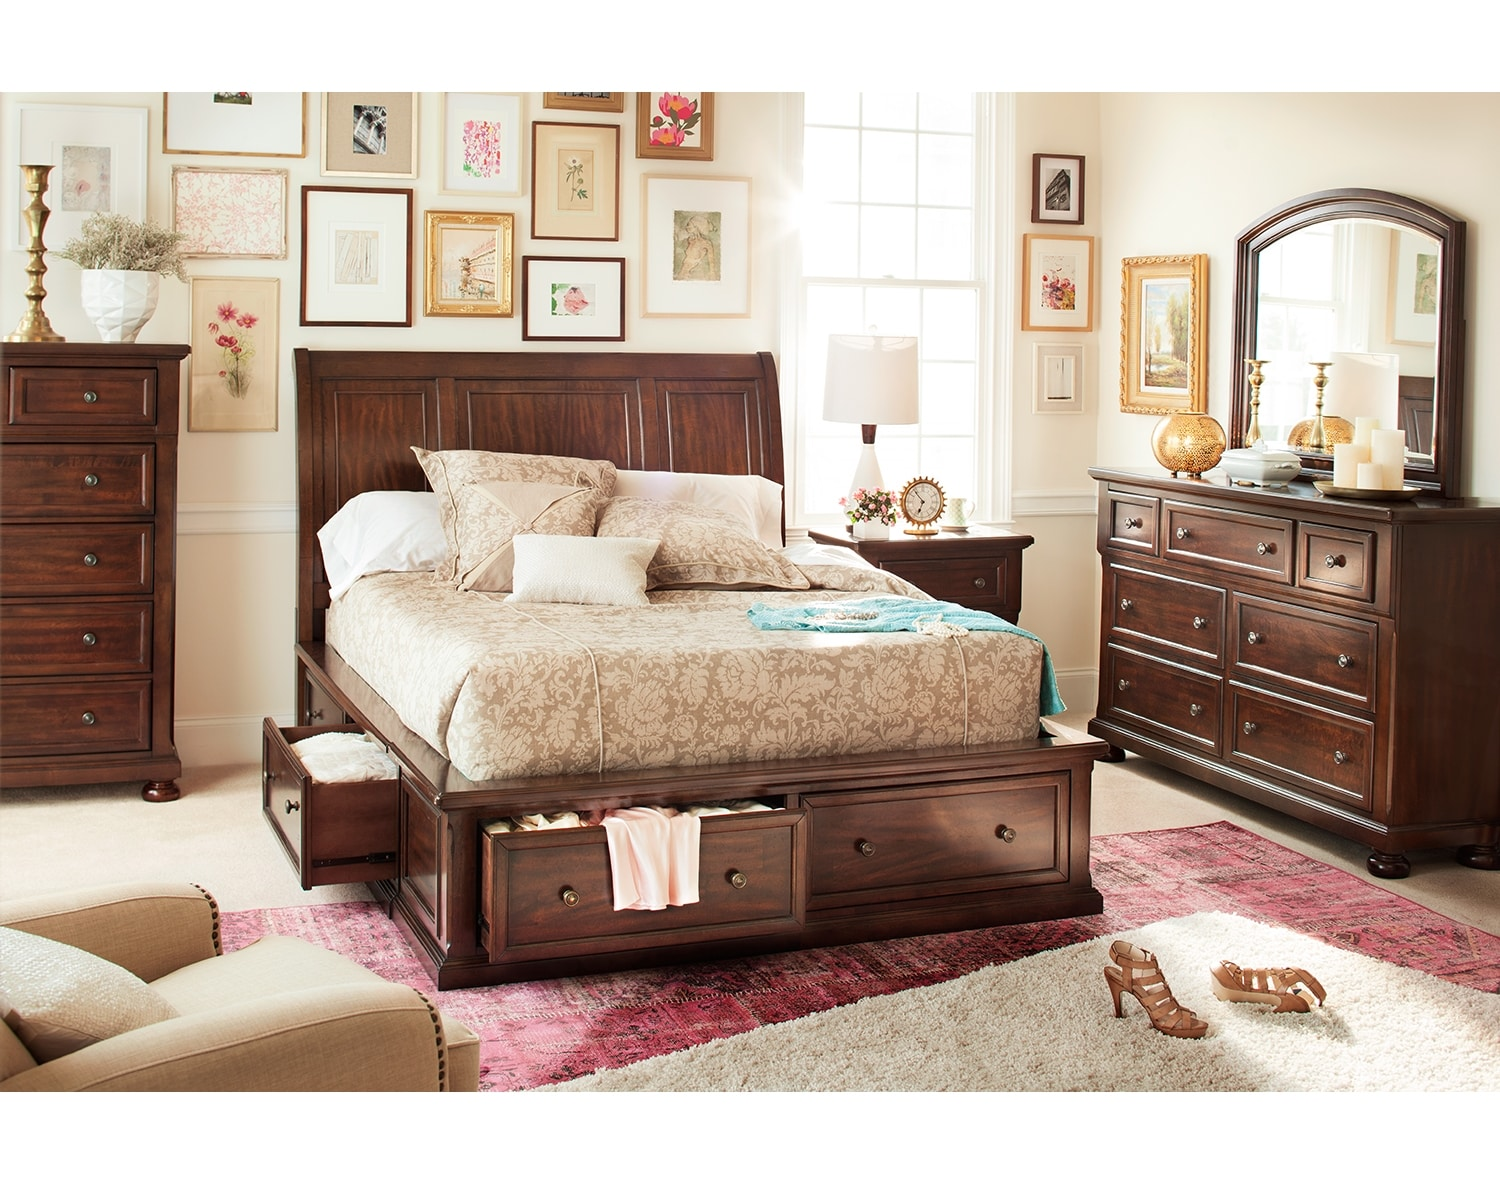 The Hanover Storage Bedroom Collection - Cherry